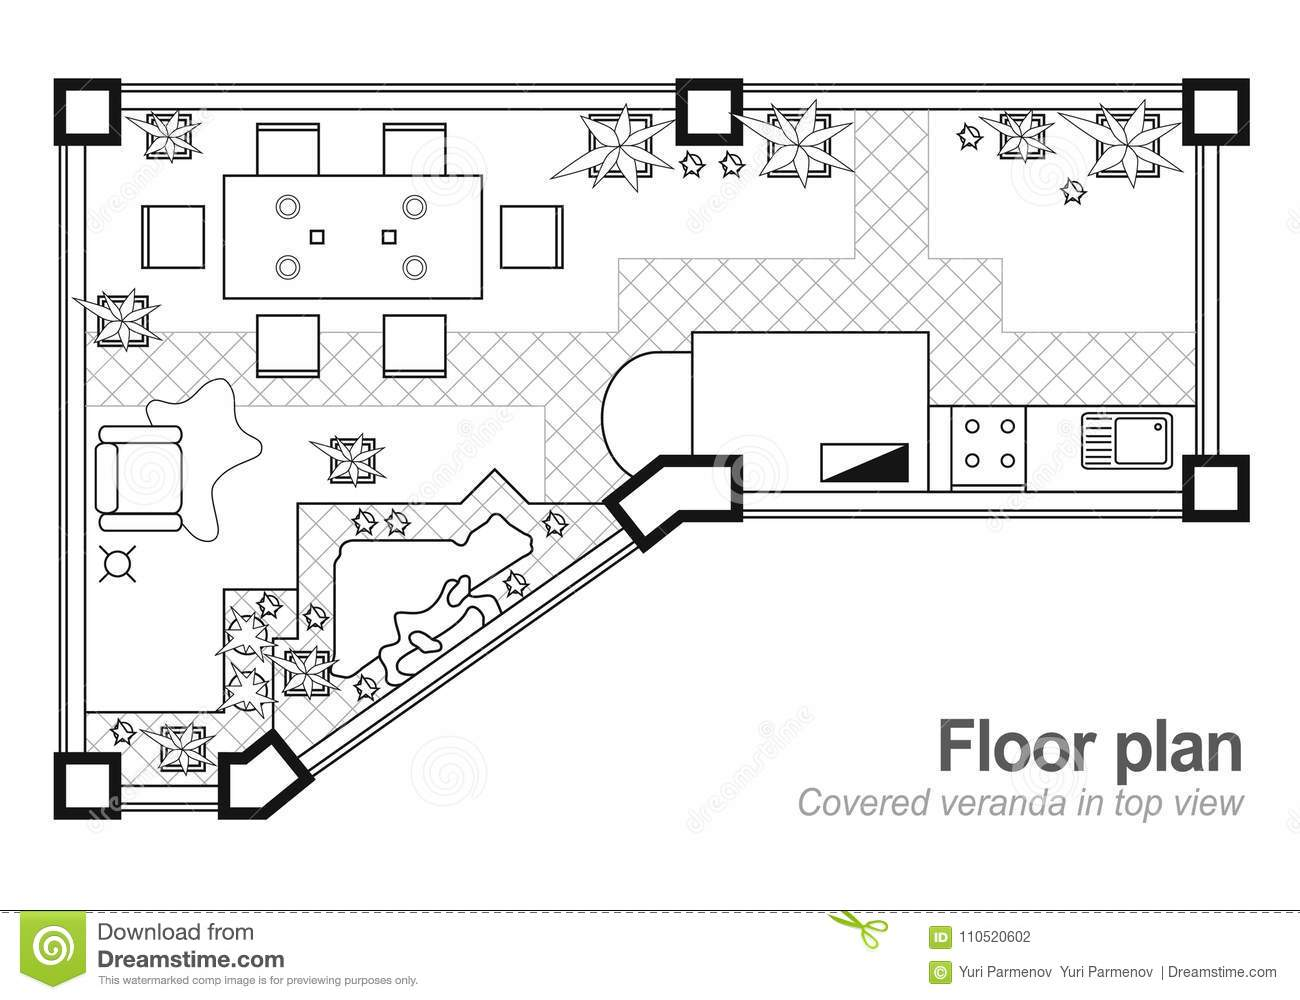 Plan Veranda Floor Plan Top View The Cottage Is A Covered Veranda Layout Of